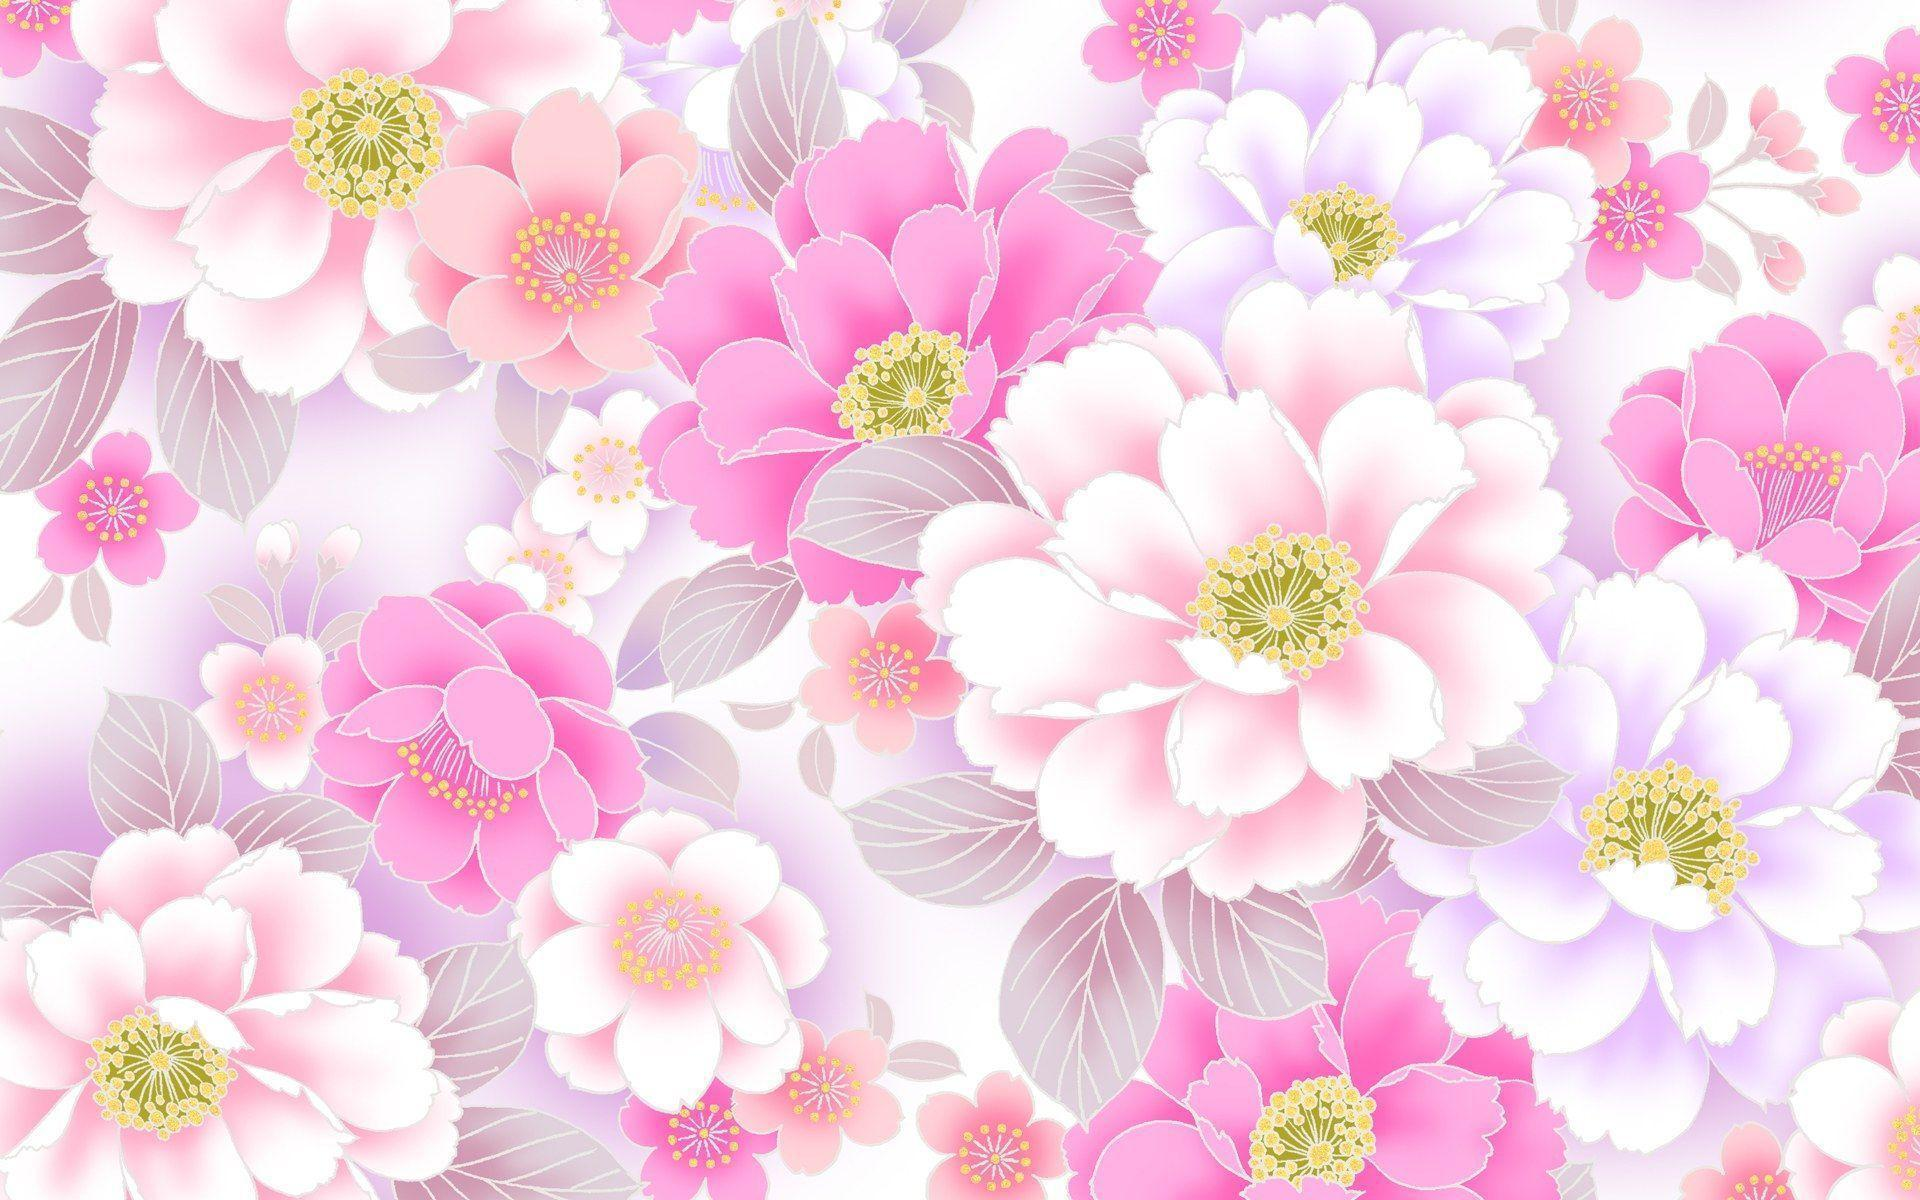 Love Wallpaper In Big Size : Floral Desktop Backgrounds - Wallpaper cave